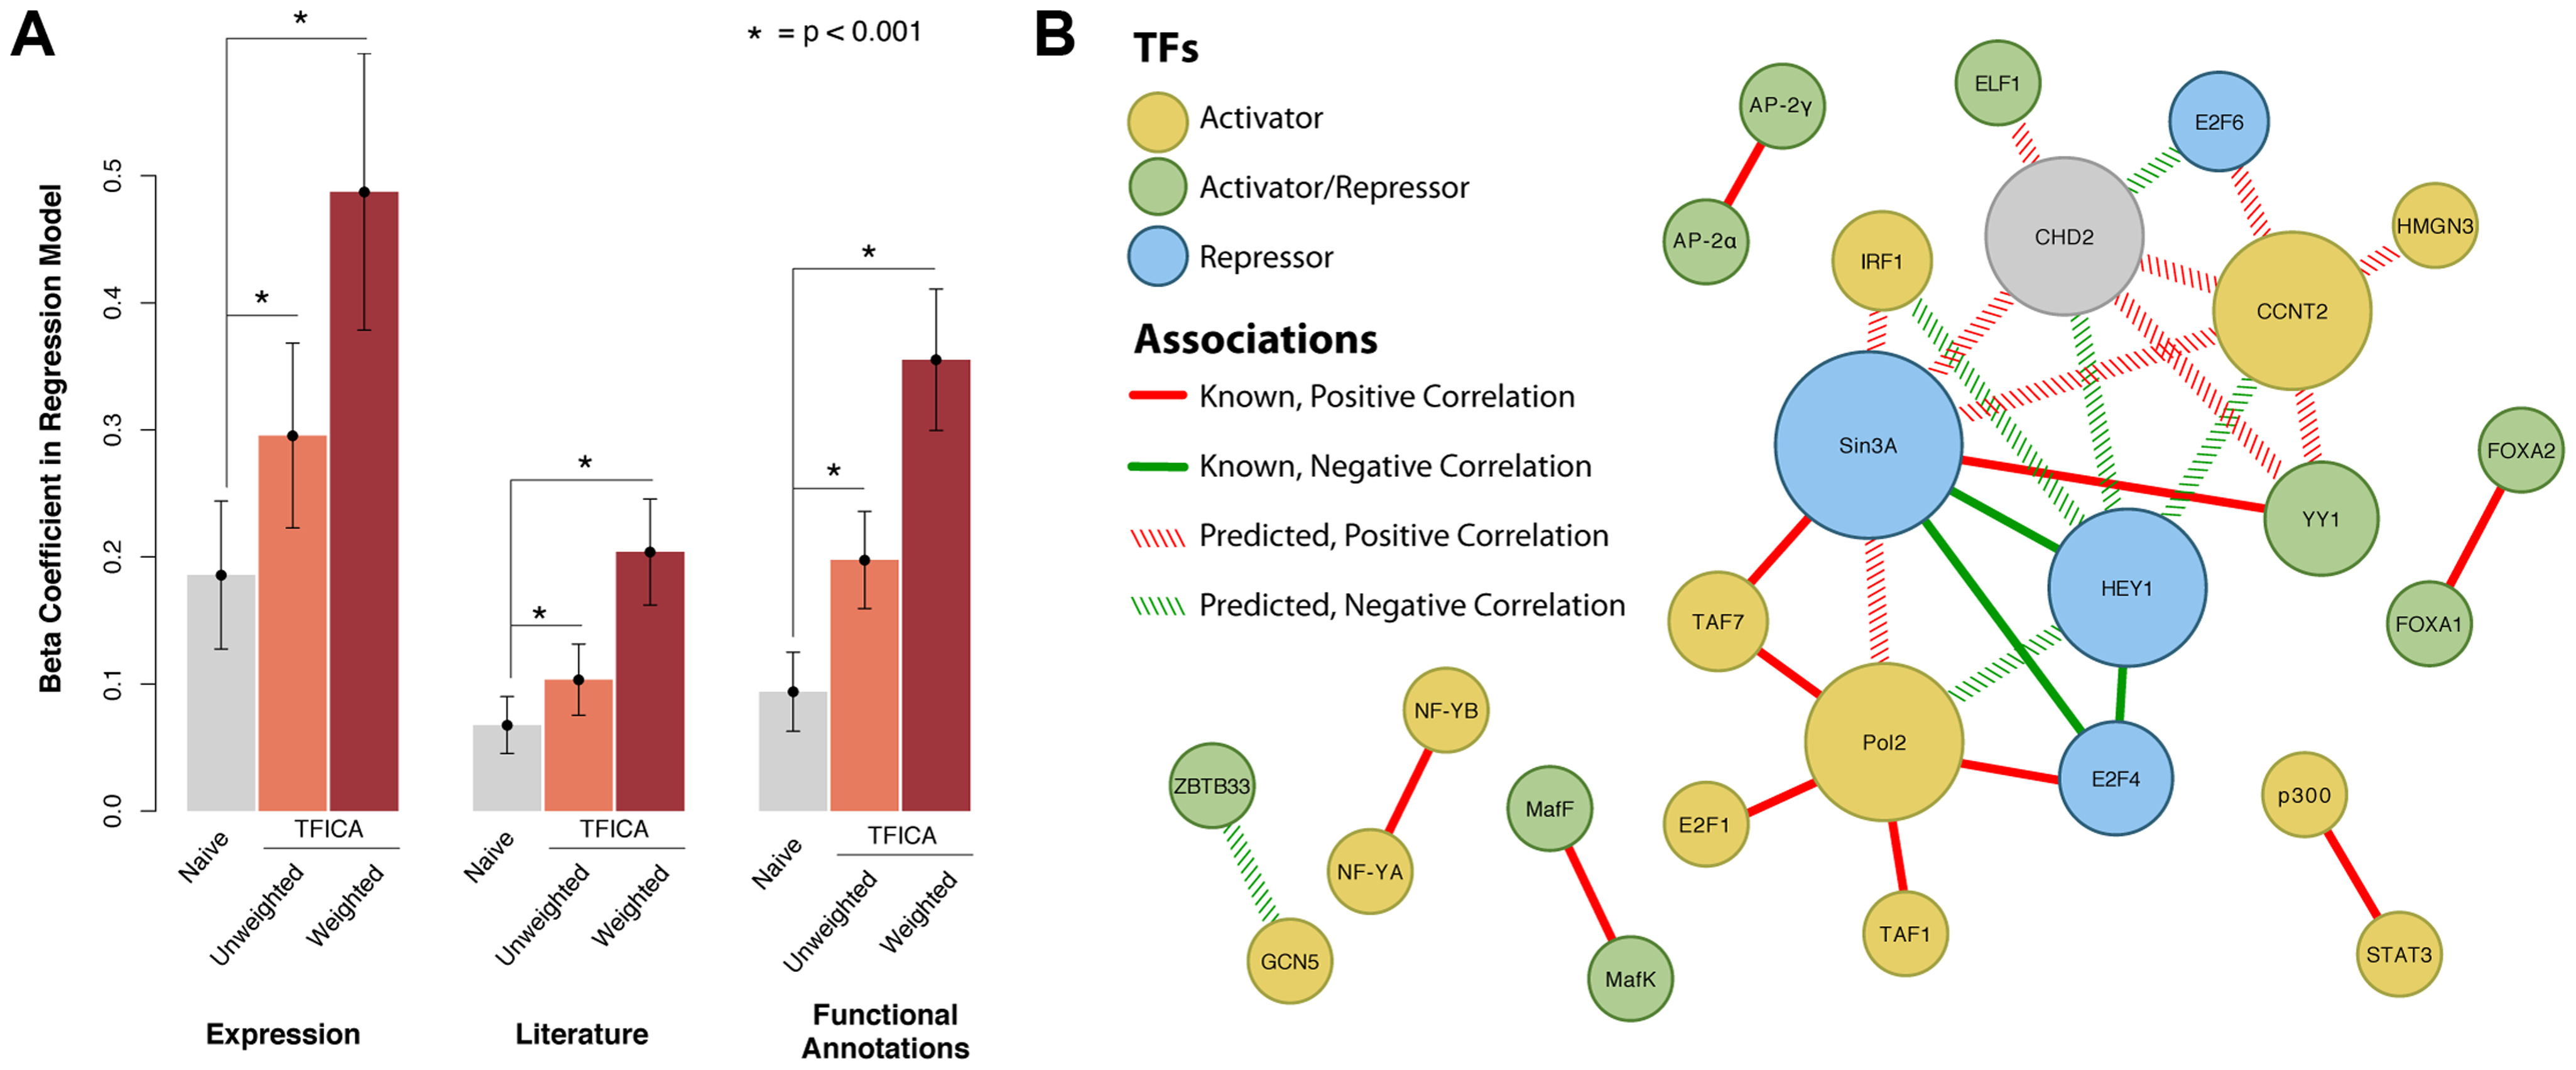 Predicting TF-TF interactions using shared modules as a measure of shared function.